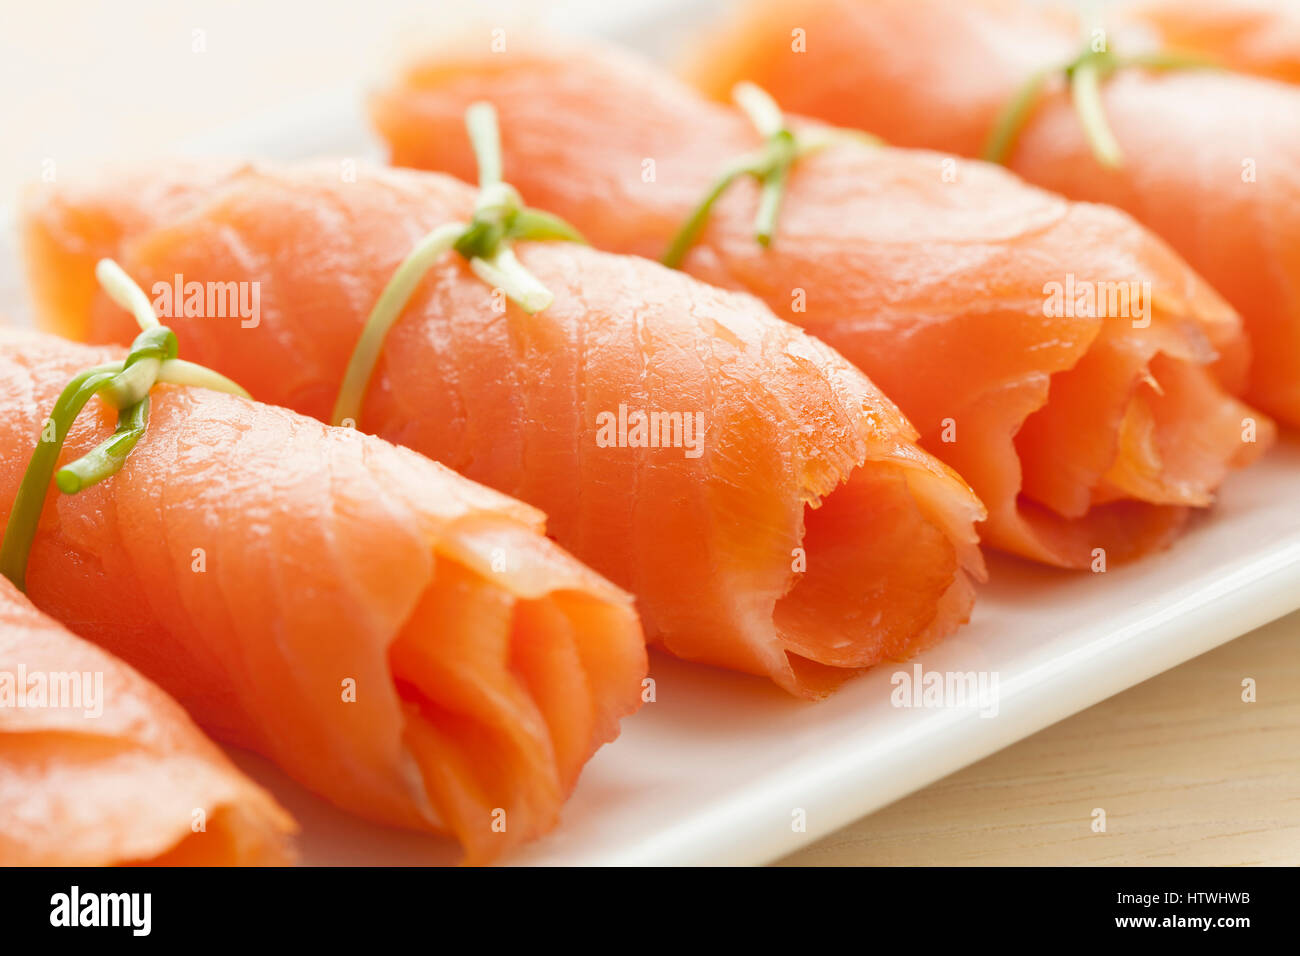 Rolls of smoked salmon with chives as a snack - Stock Image